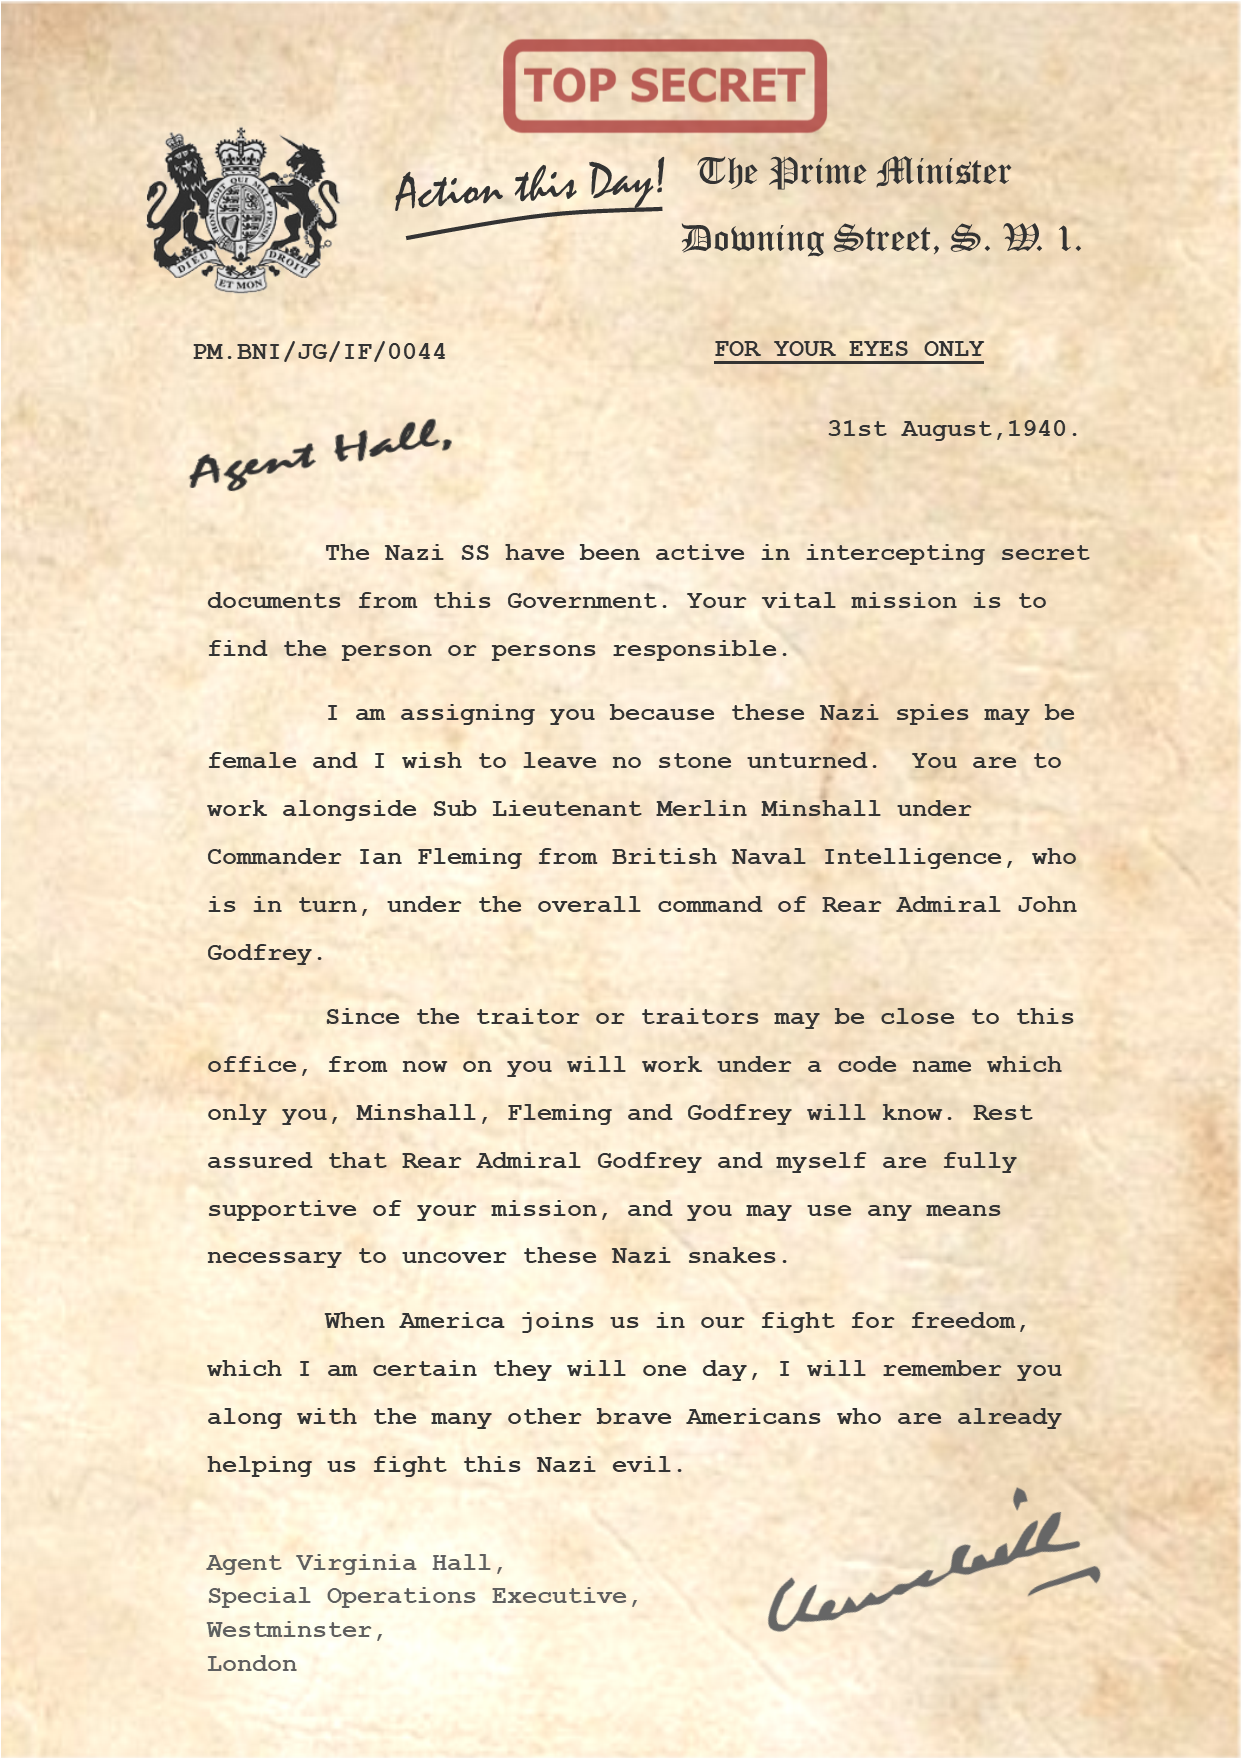 Churchill Letter to Agent Virginia Hall PNG